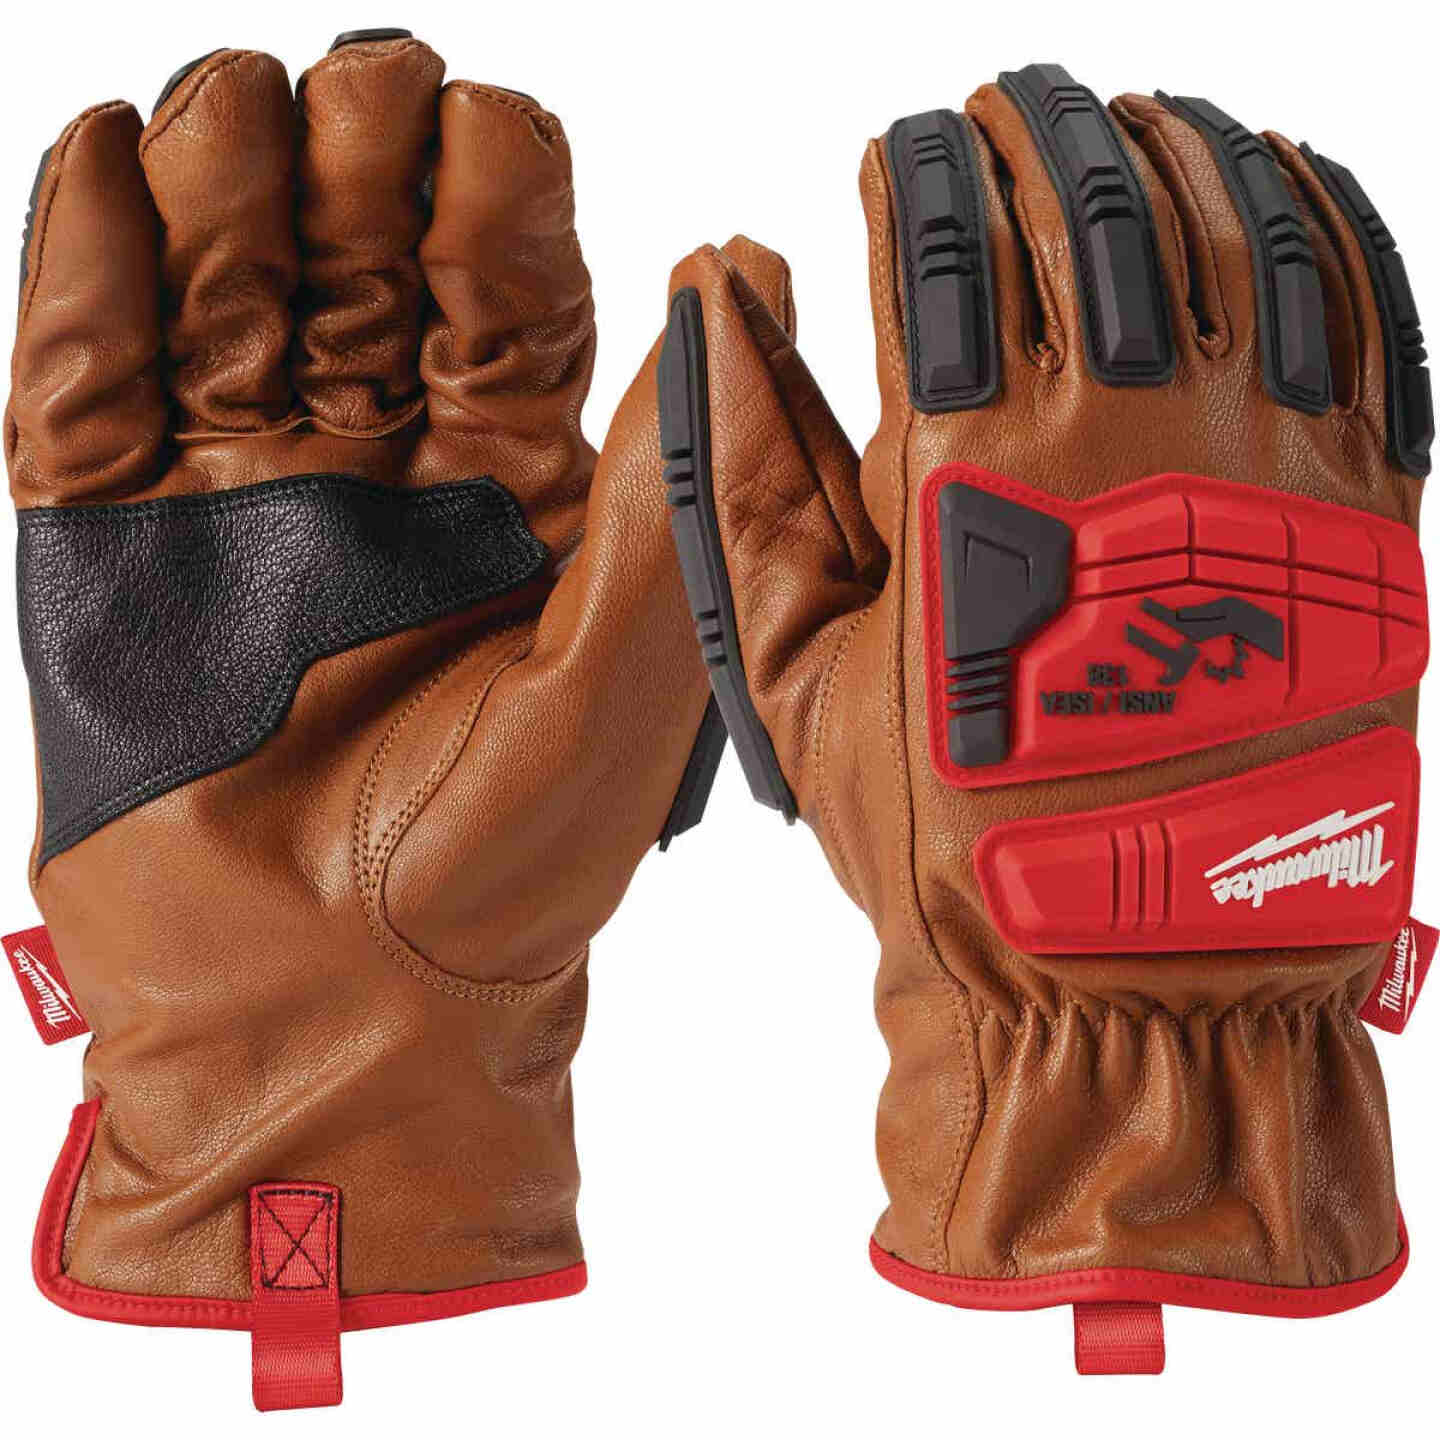 Milwaukee Impact Cut Level 3 Men's Large Goatskin Leather Work Gloves Image 3